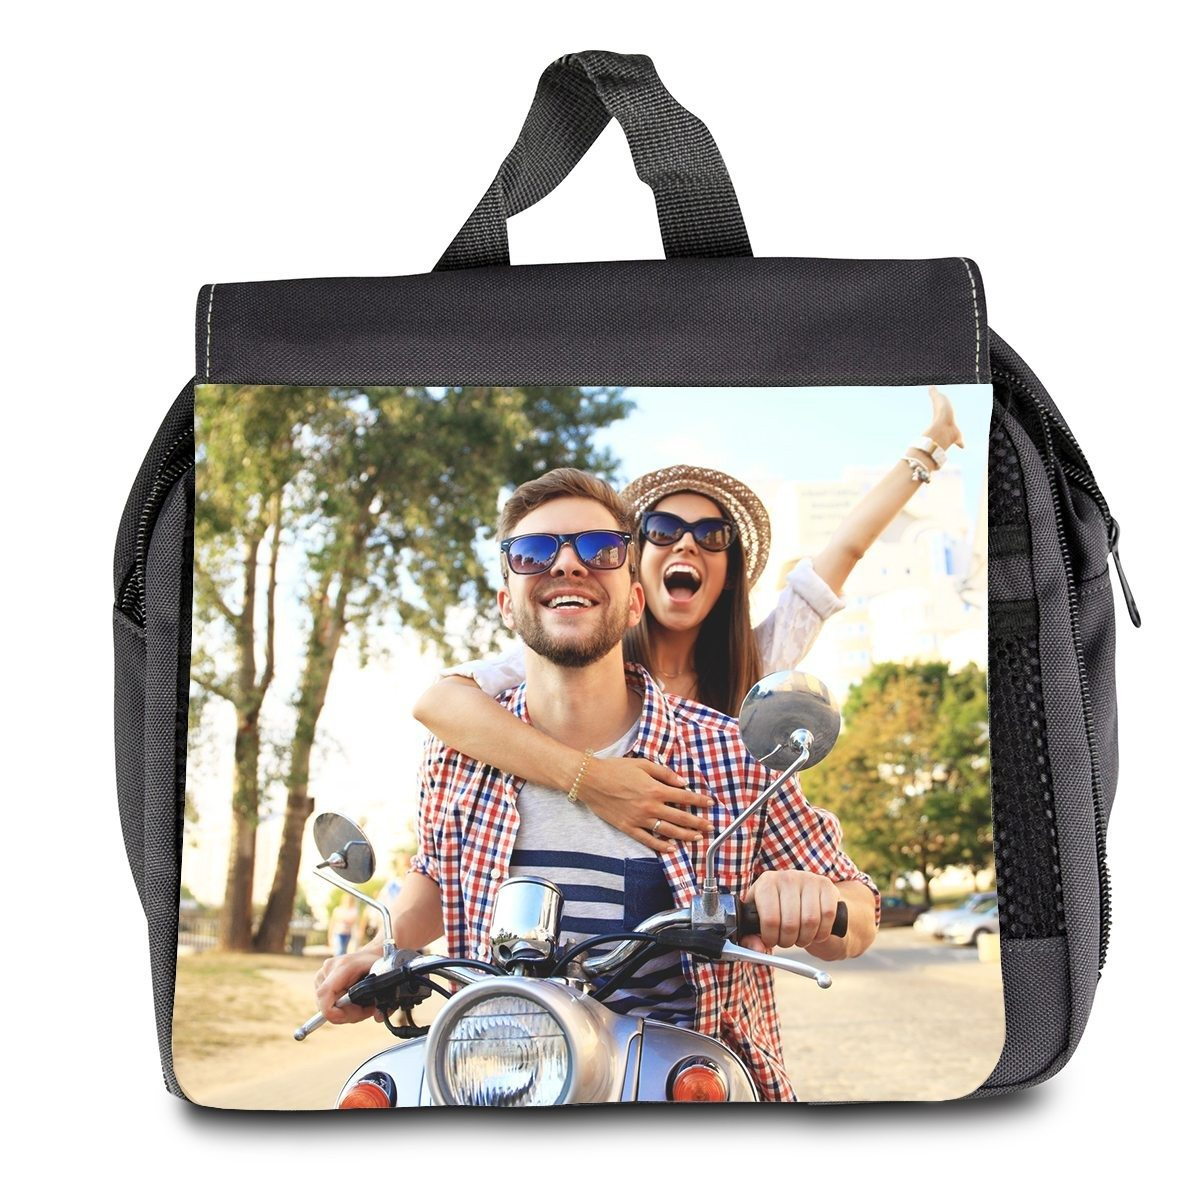 PERSONALIZED TOILETRY BAG WITH PHOTO